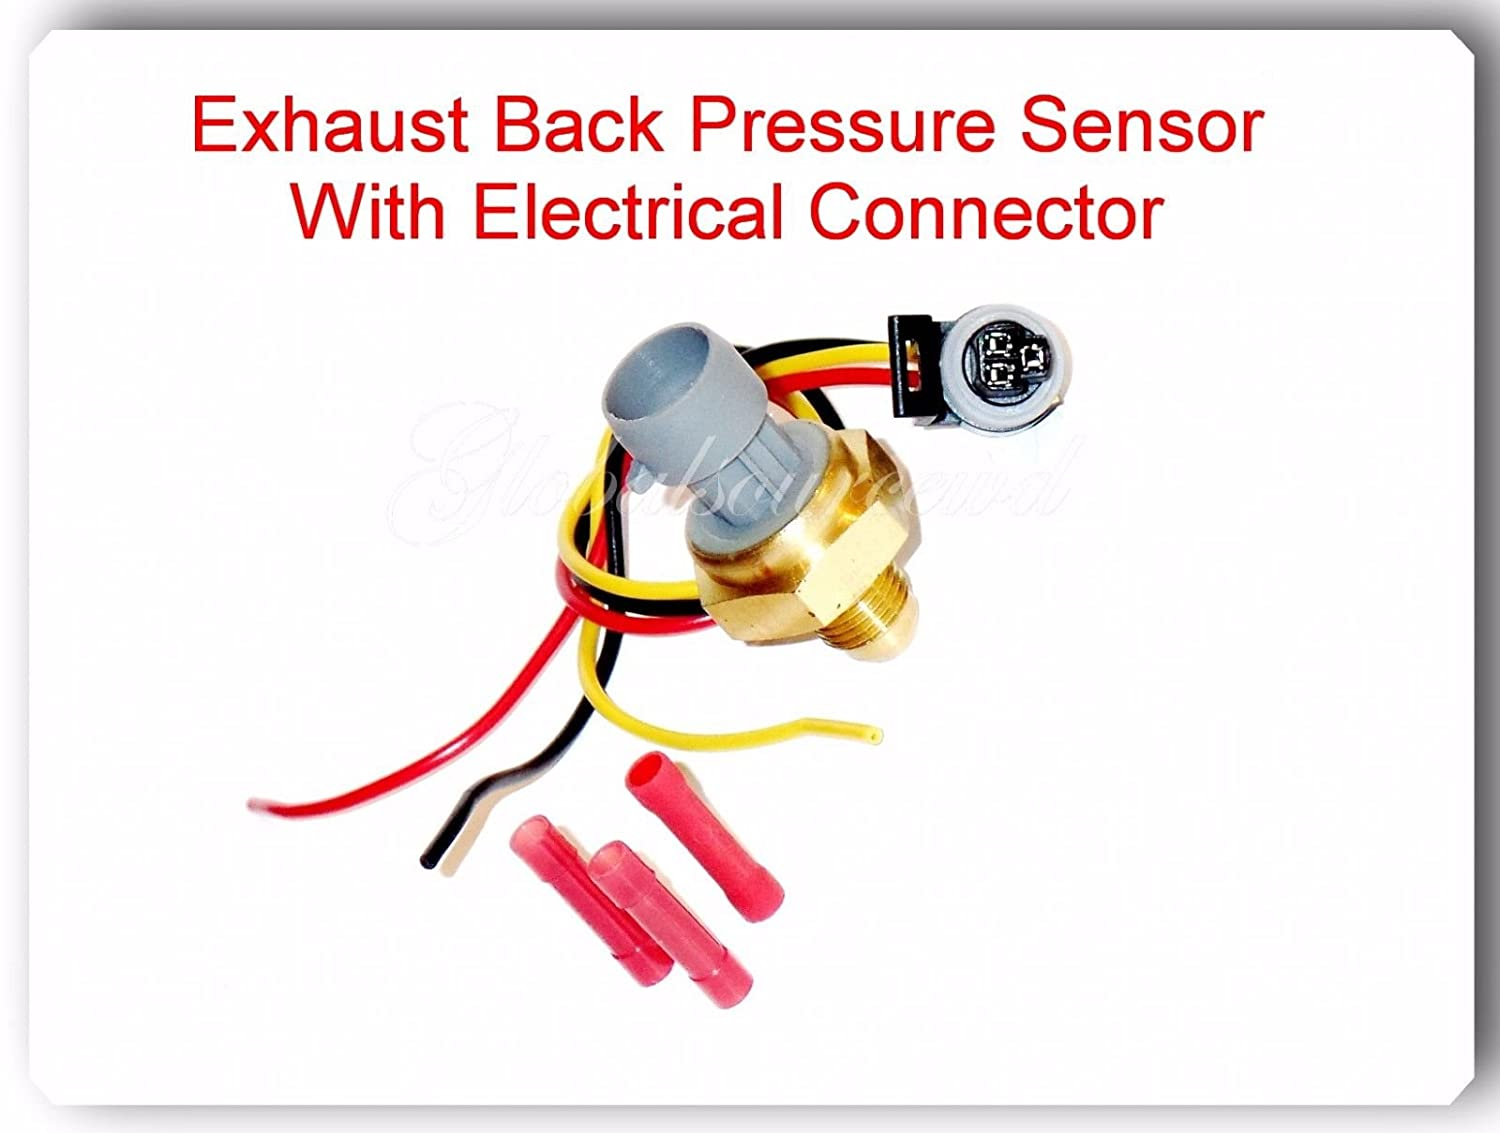 7e7z9j460aa Egr Pressure Feedback Dpfe Sensor With 2004 Ford F 250 Icp Connector Pigtail Fits V8 64l Super Duty 2008 2010 350